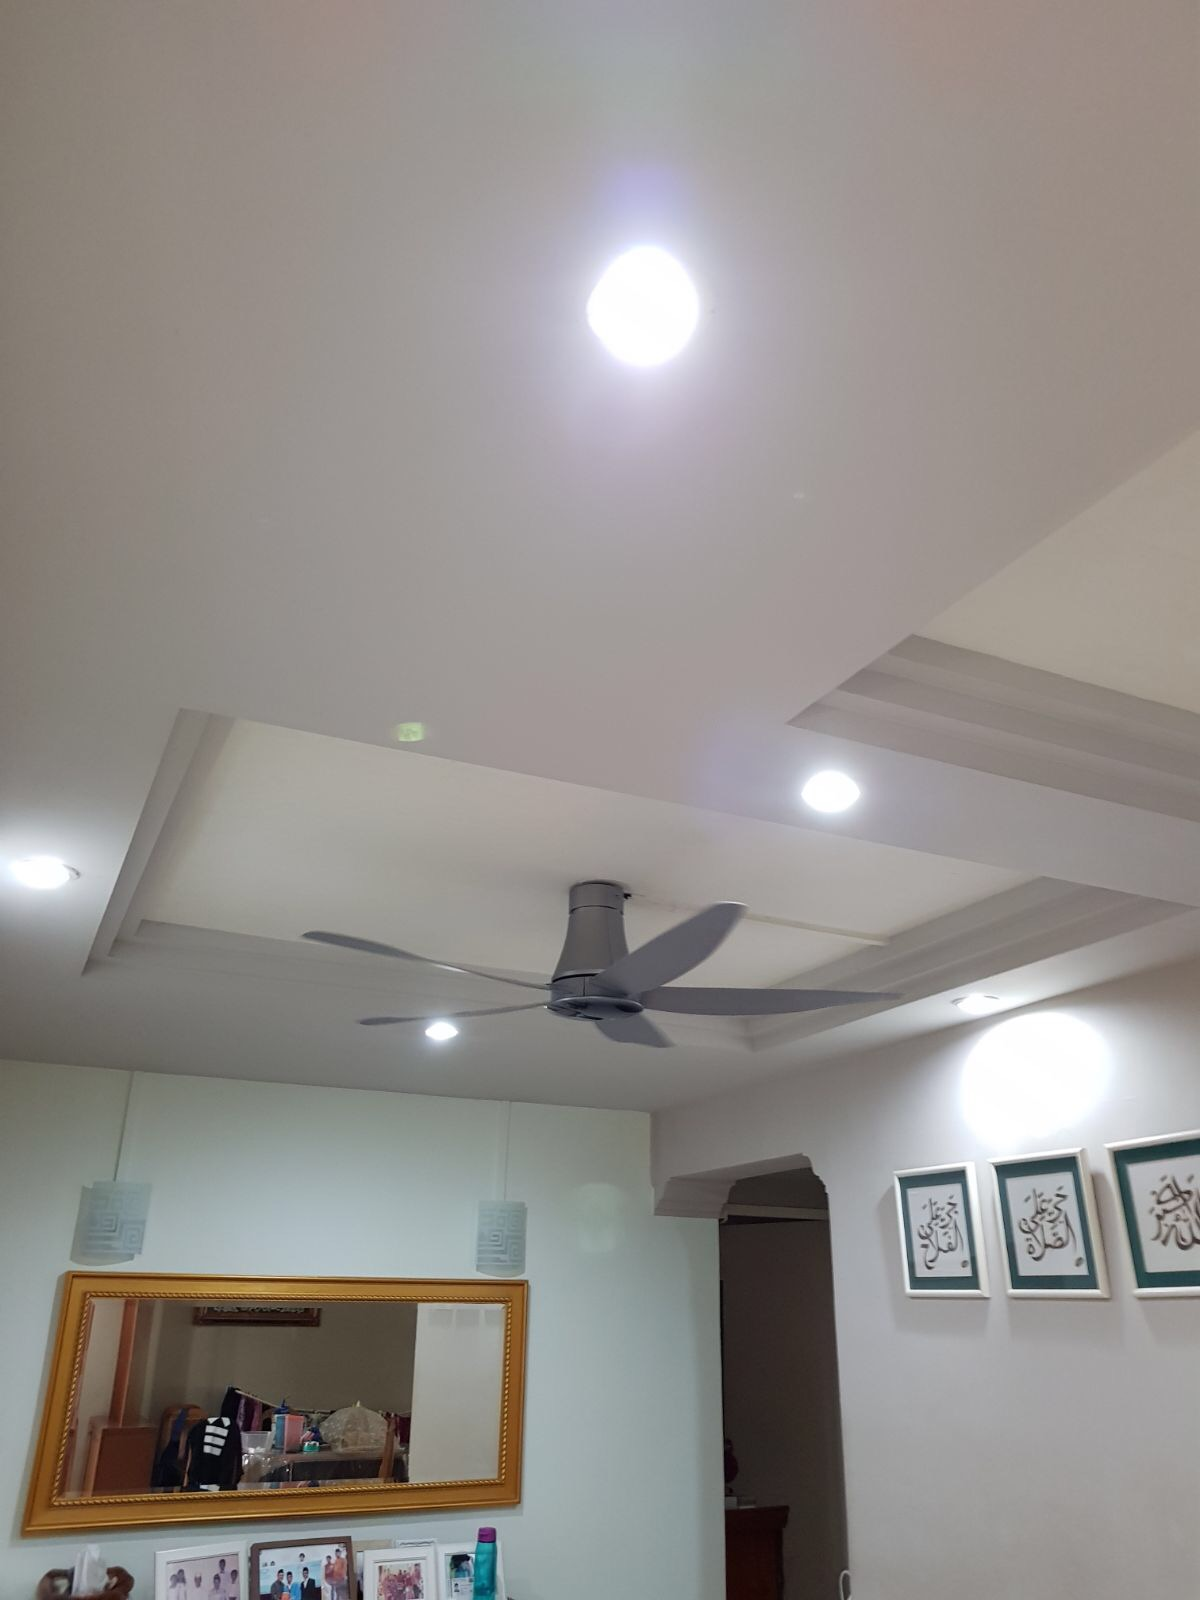 Kdk T60aw Dc 60 Ceiling Fan Grey Sembawang Lighting House Pte Ltd Wiring On Without Mount Light Moreover Install Sample 2